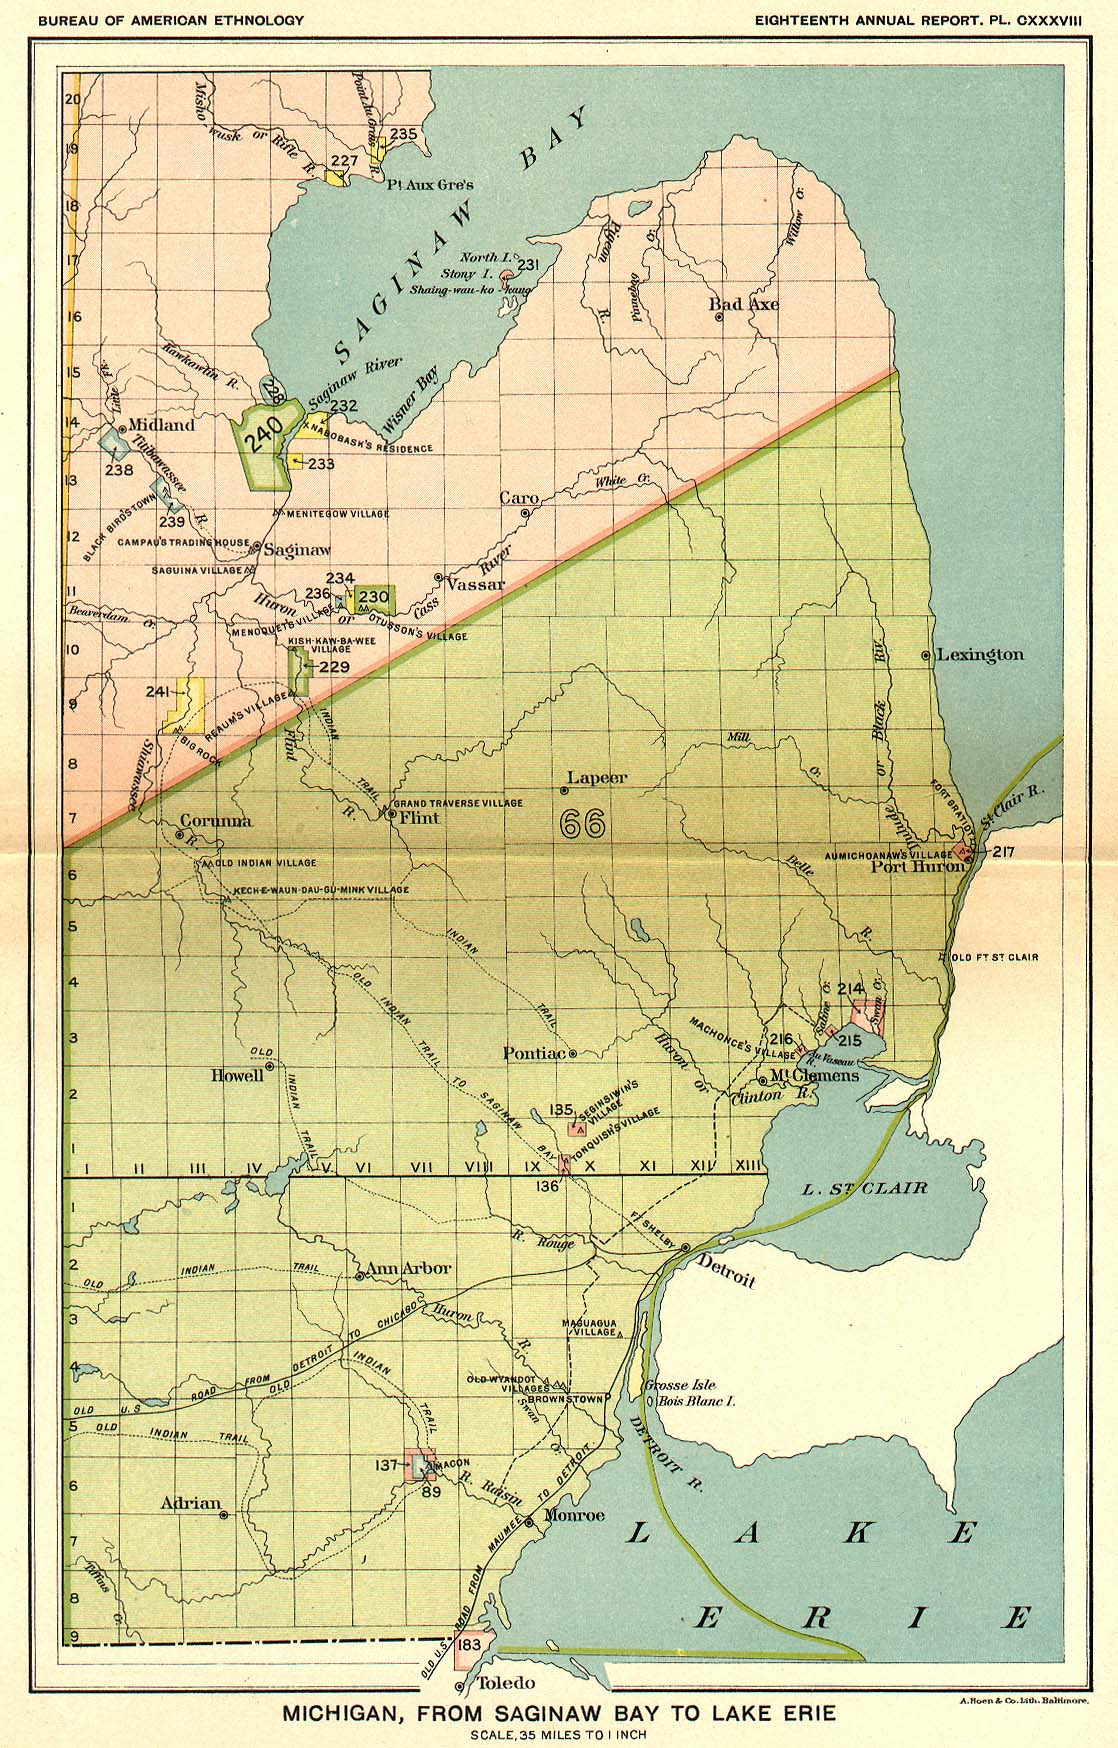 Indian Land Cessions In The U S Michigan From Saginaw Bay To - Lake erie on us map